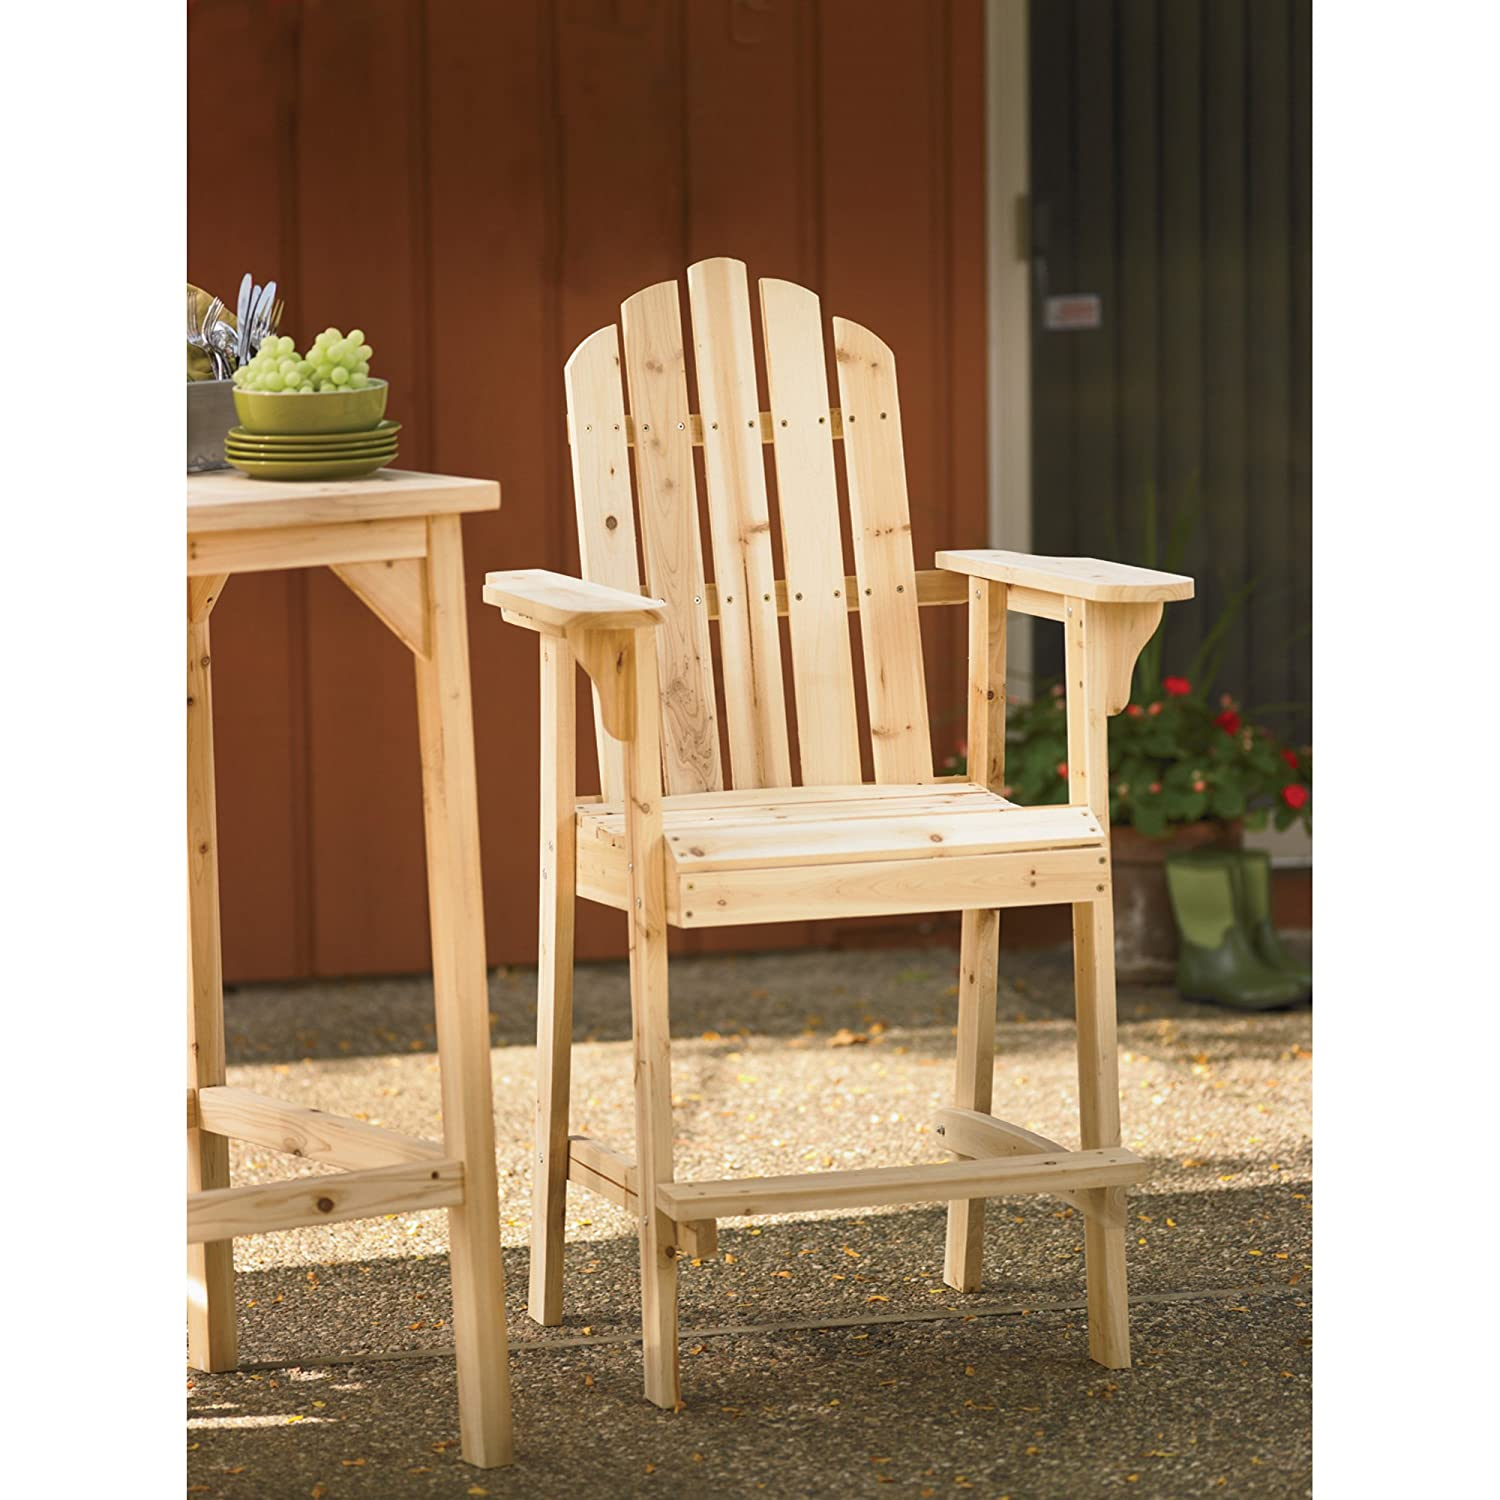 Charmant Amazon.com : Tall Unfinished Fir Wood Adirondack Chair : Bar Height Adirondack  Chairs : Garden U0026 Outdoor